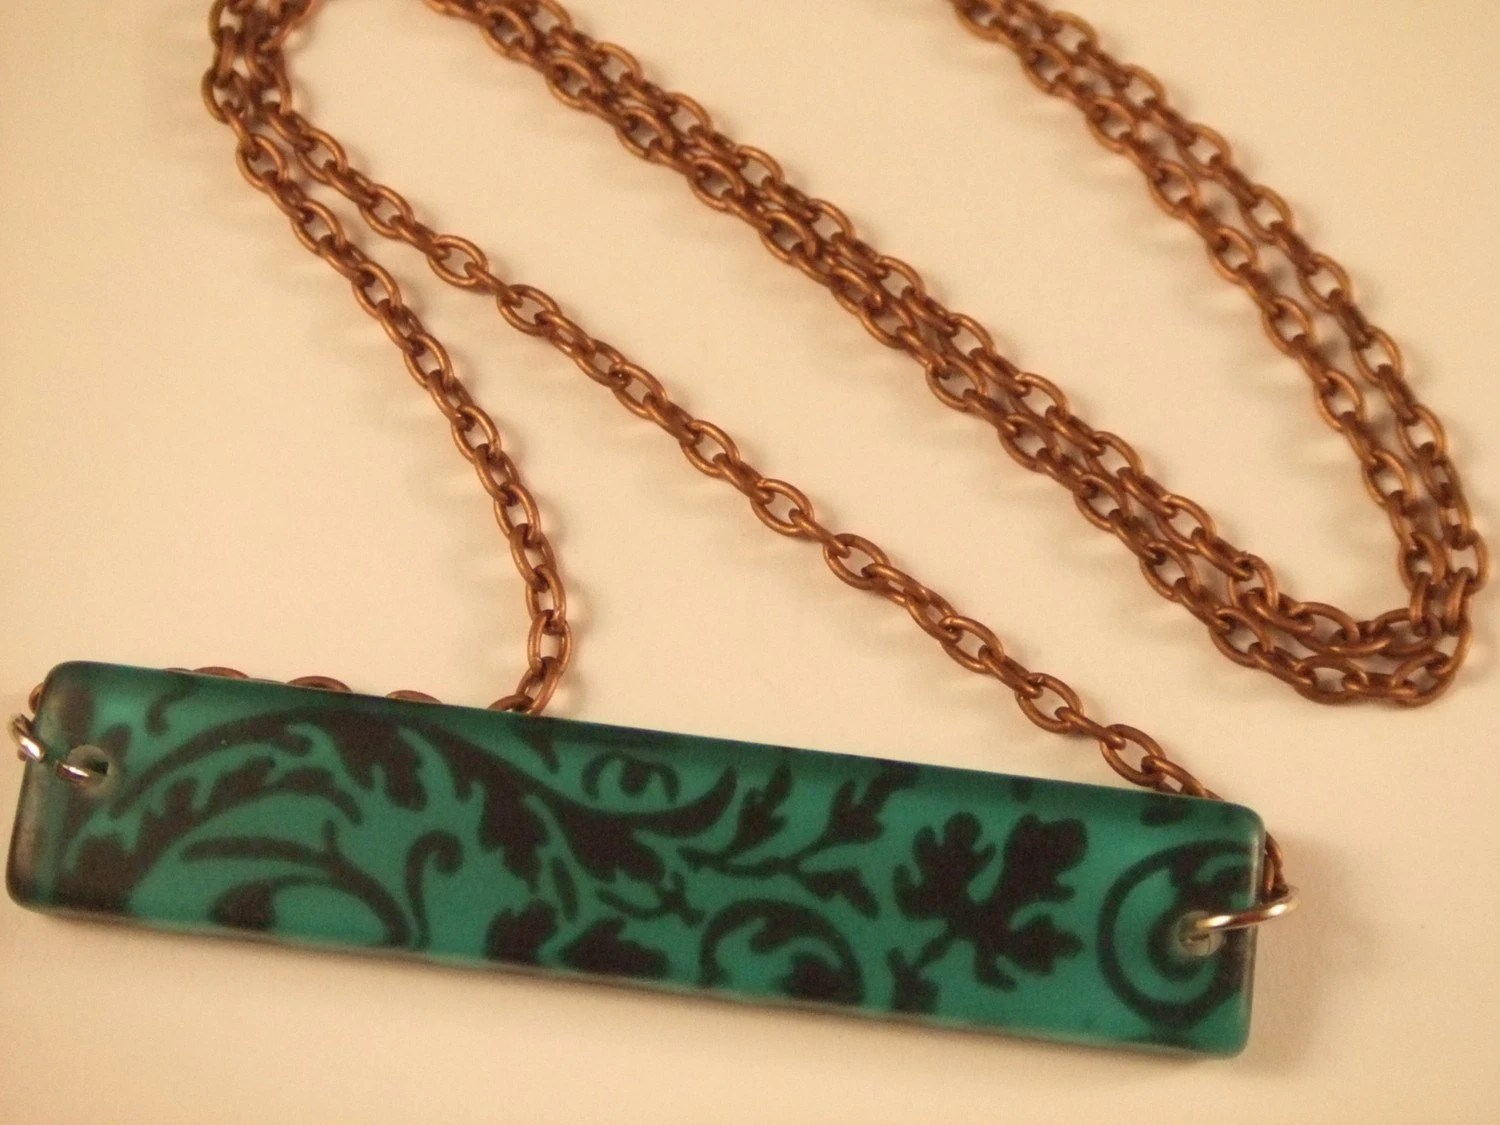 Teal and Black Filigree Pendant Necklace